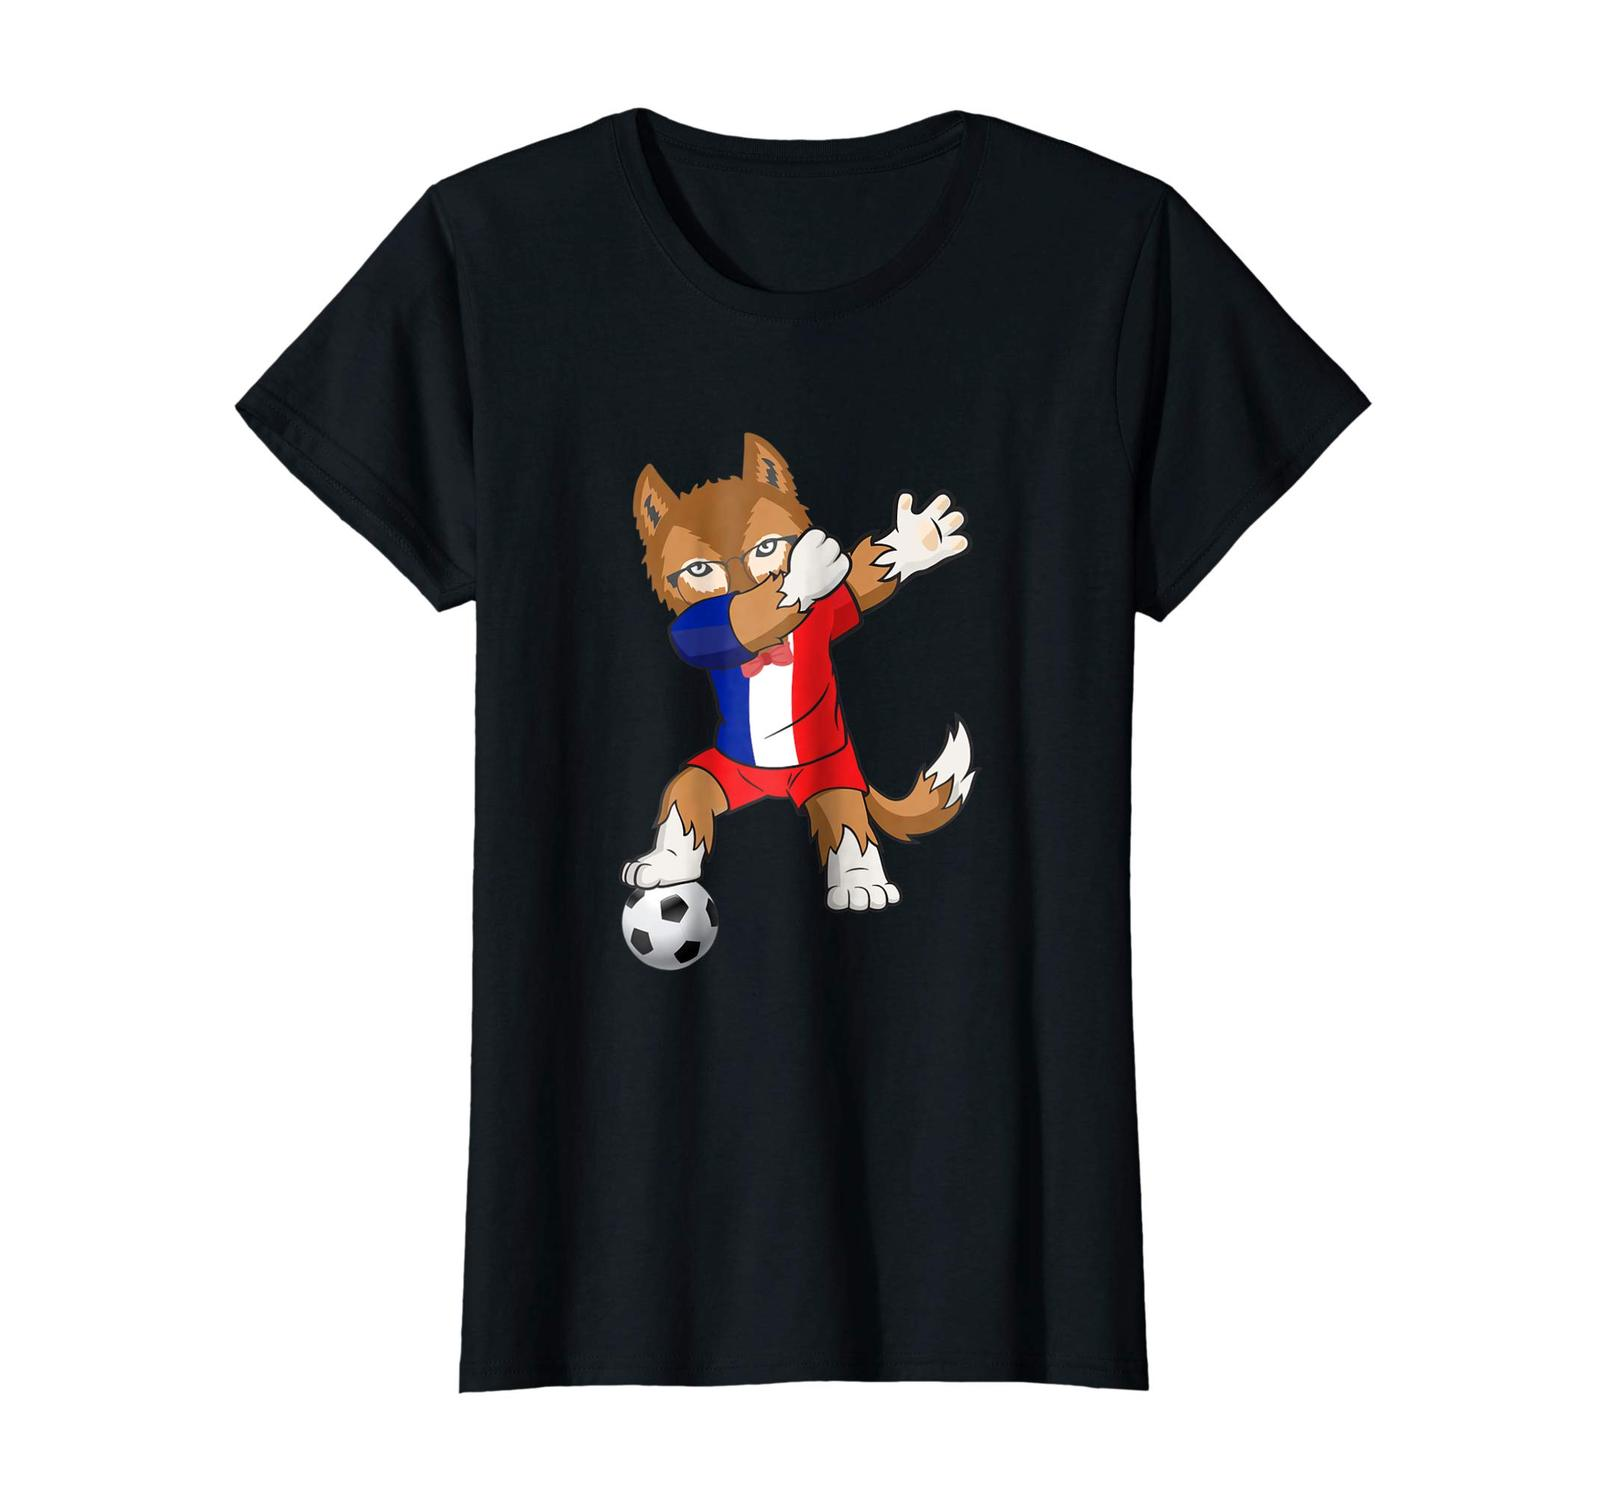 Brother Shirts - France Soccer Team Fan T-Shirt Russia Football 2018 Cup Kit Wow